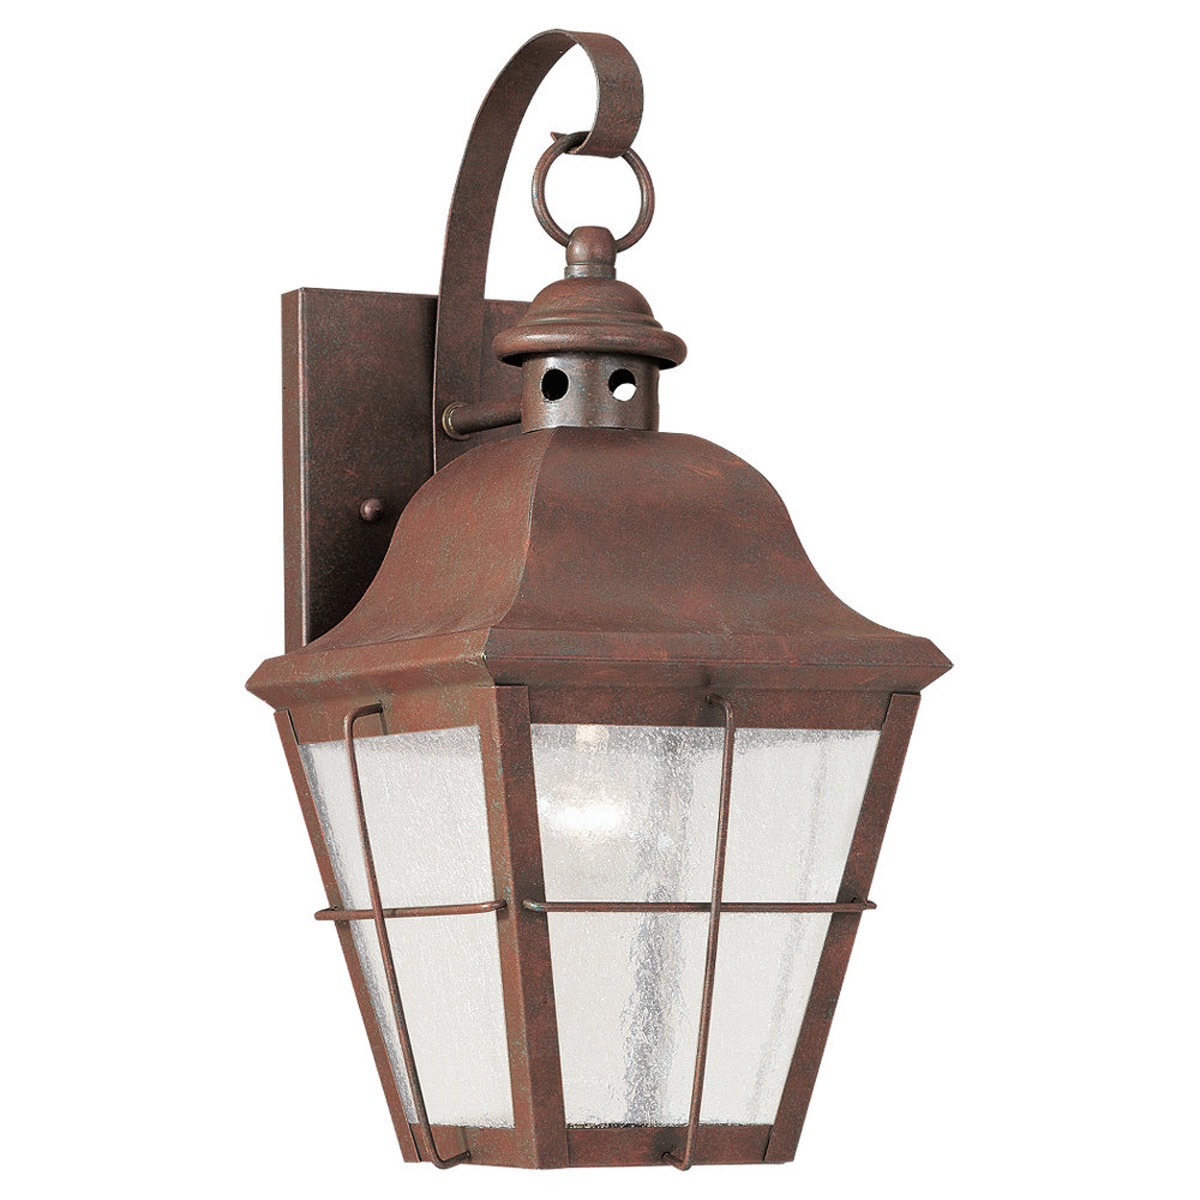 Sea Gull Lighting Chatham 1 Light Outdoor Wall Lantern in Weathered Copper 8462-44 photo